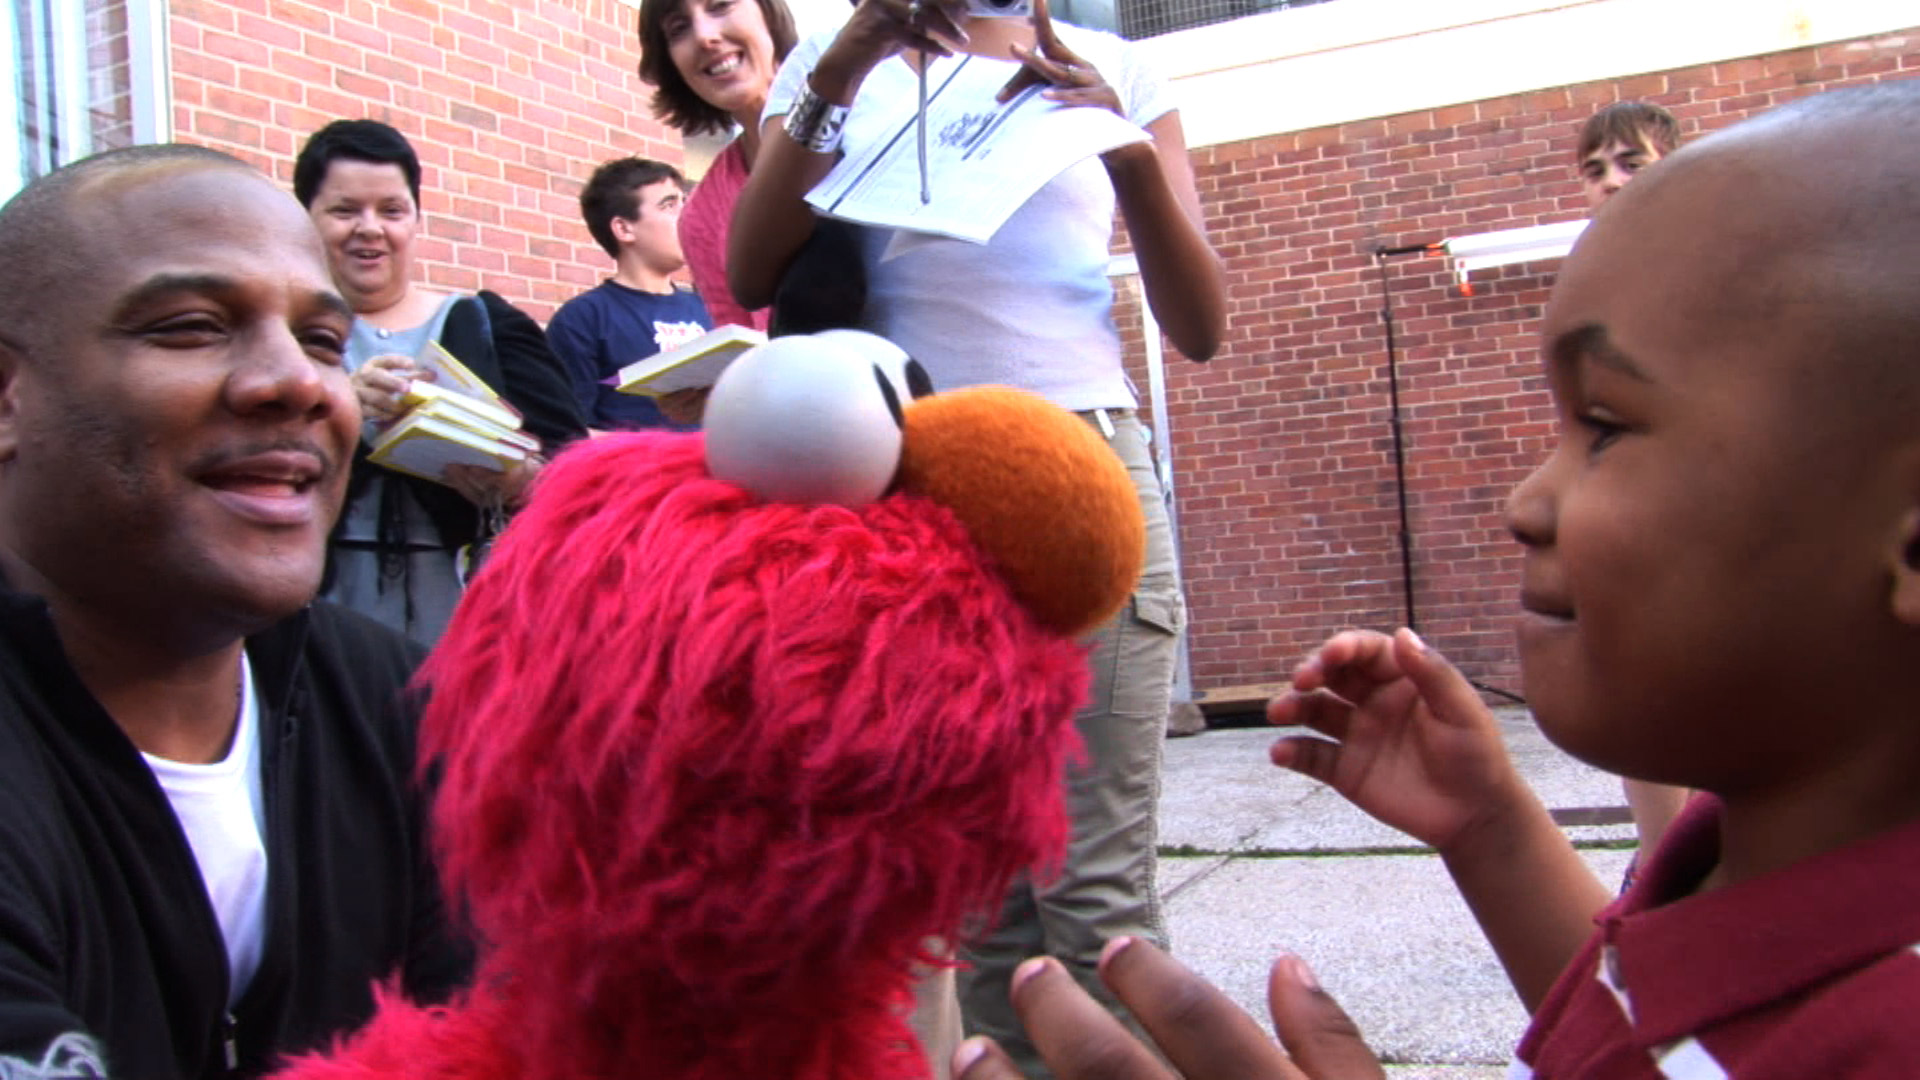 REVIEW: 'Being Elmo: A Puppeteers Journey' Is An Inspirational Doc About The Man Behind The Muppet   READ IT HERE .